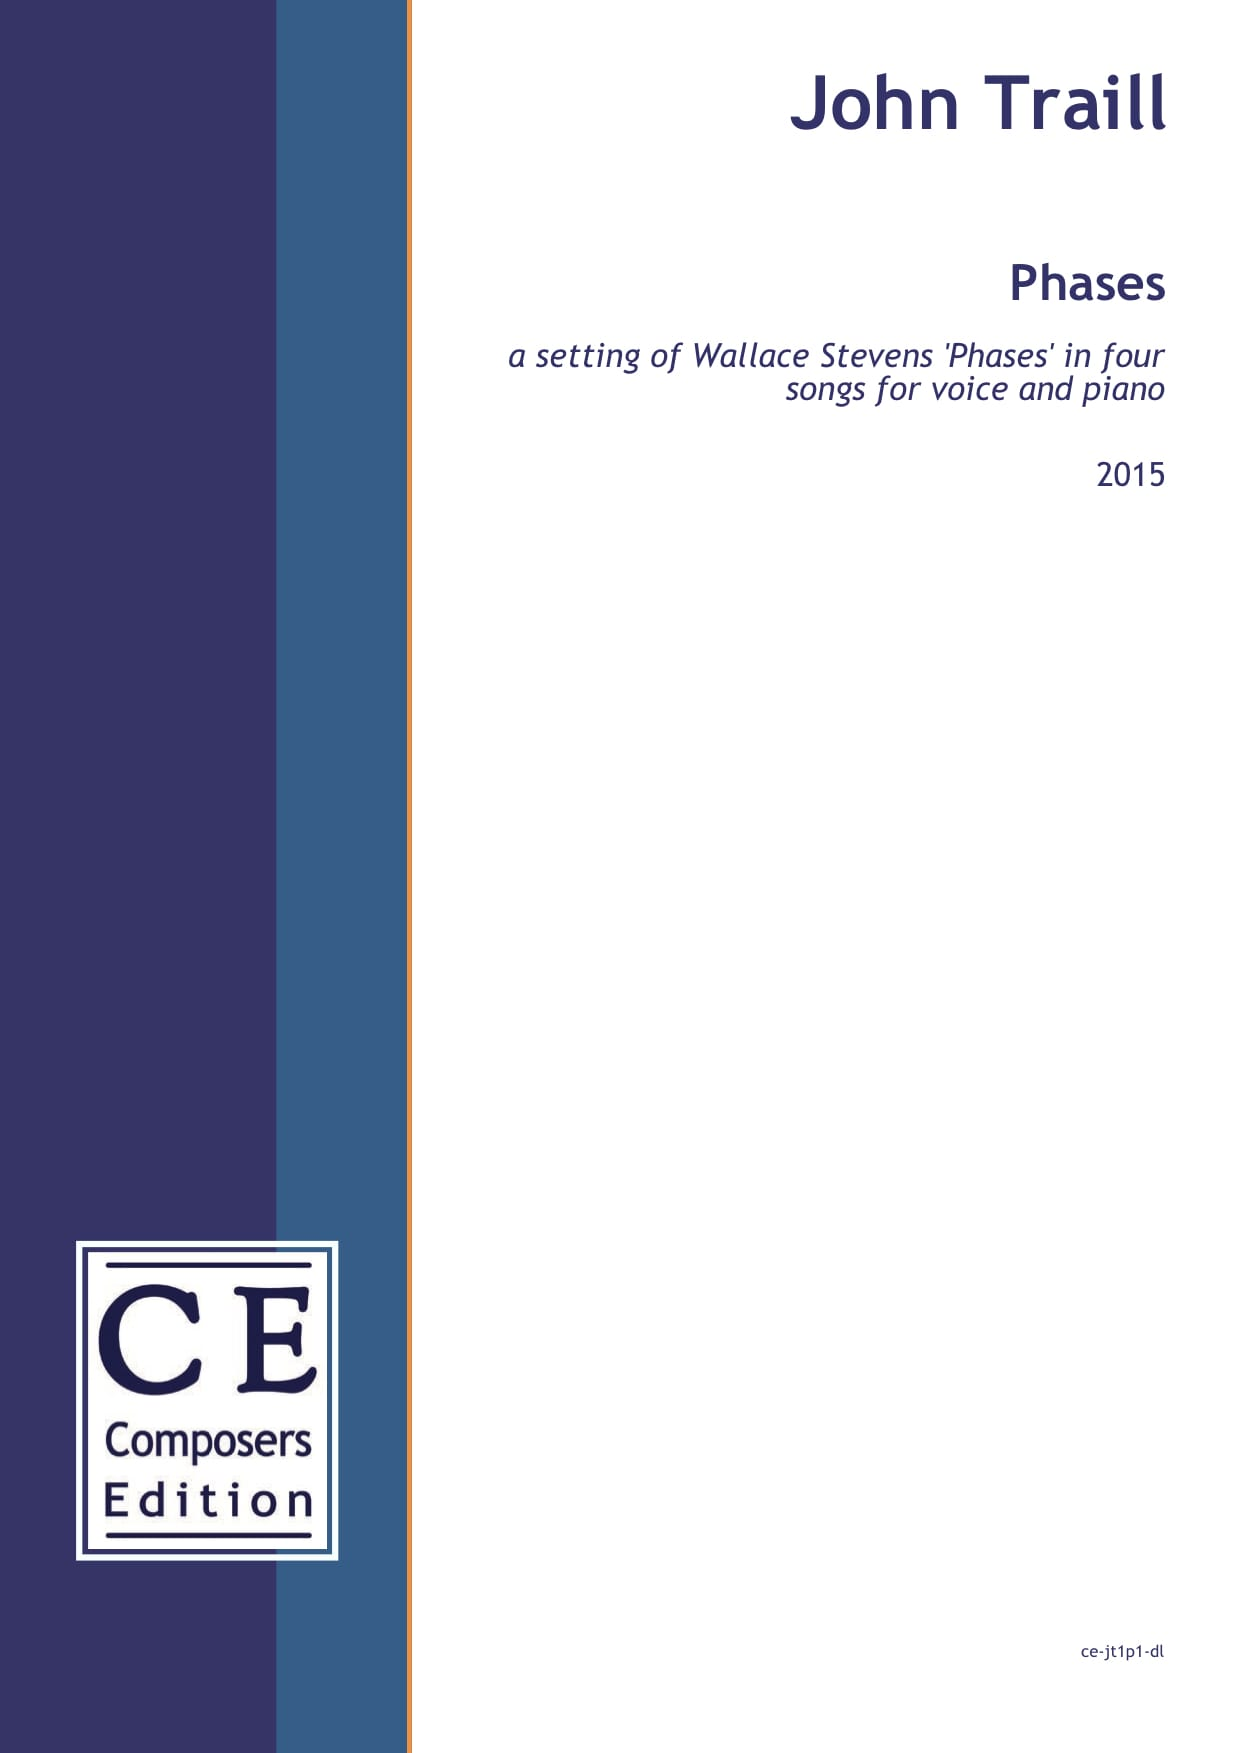 John Traill: Phases a setting of Wallace Stevens 'Phases' in four songs for voice and piano